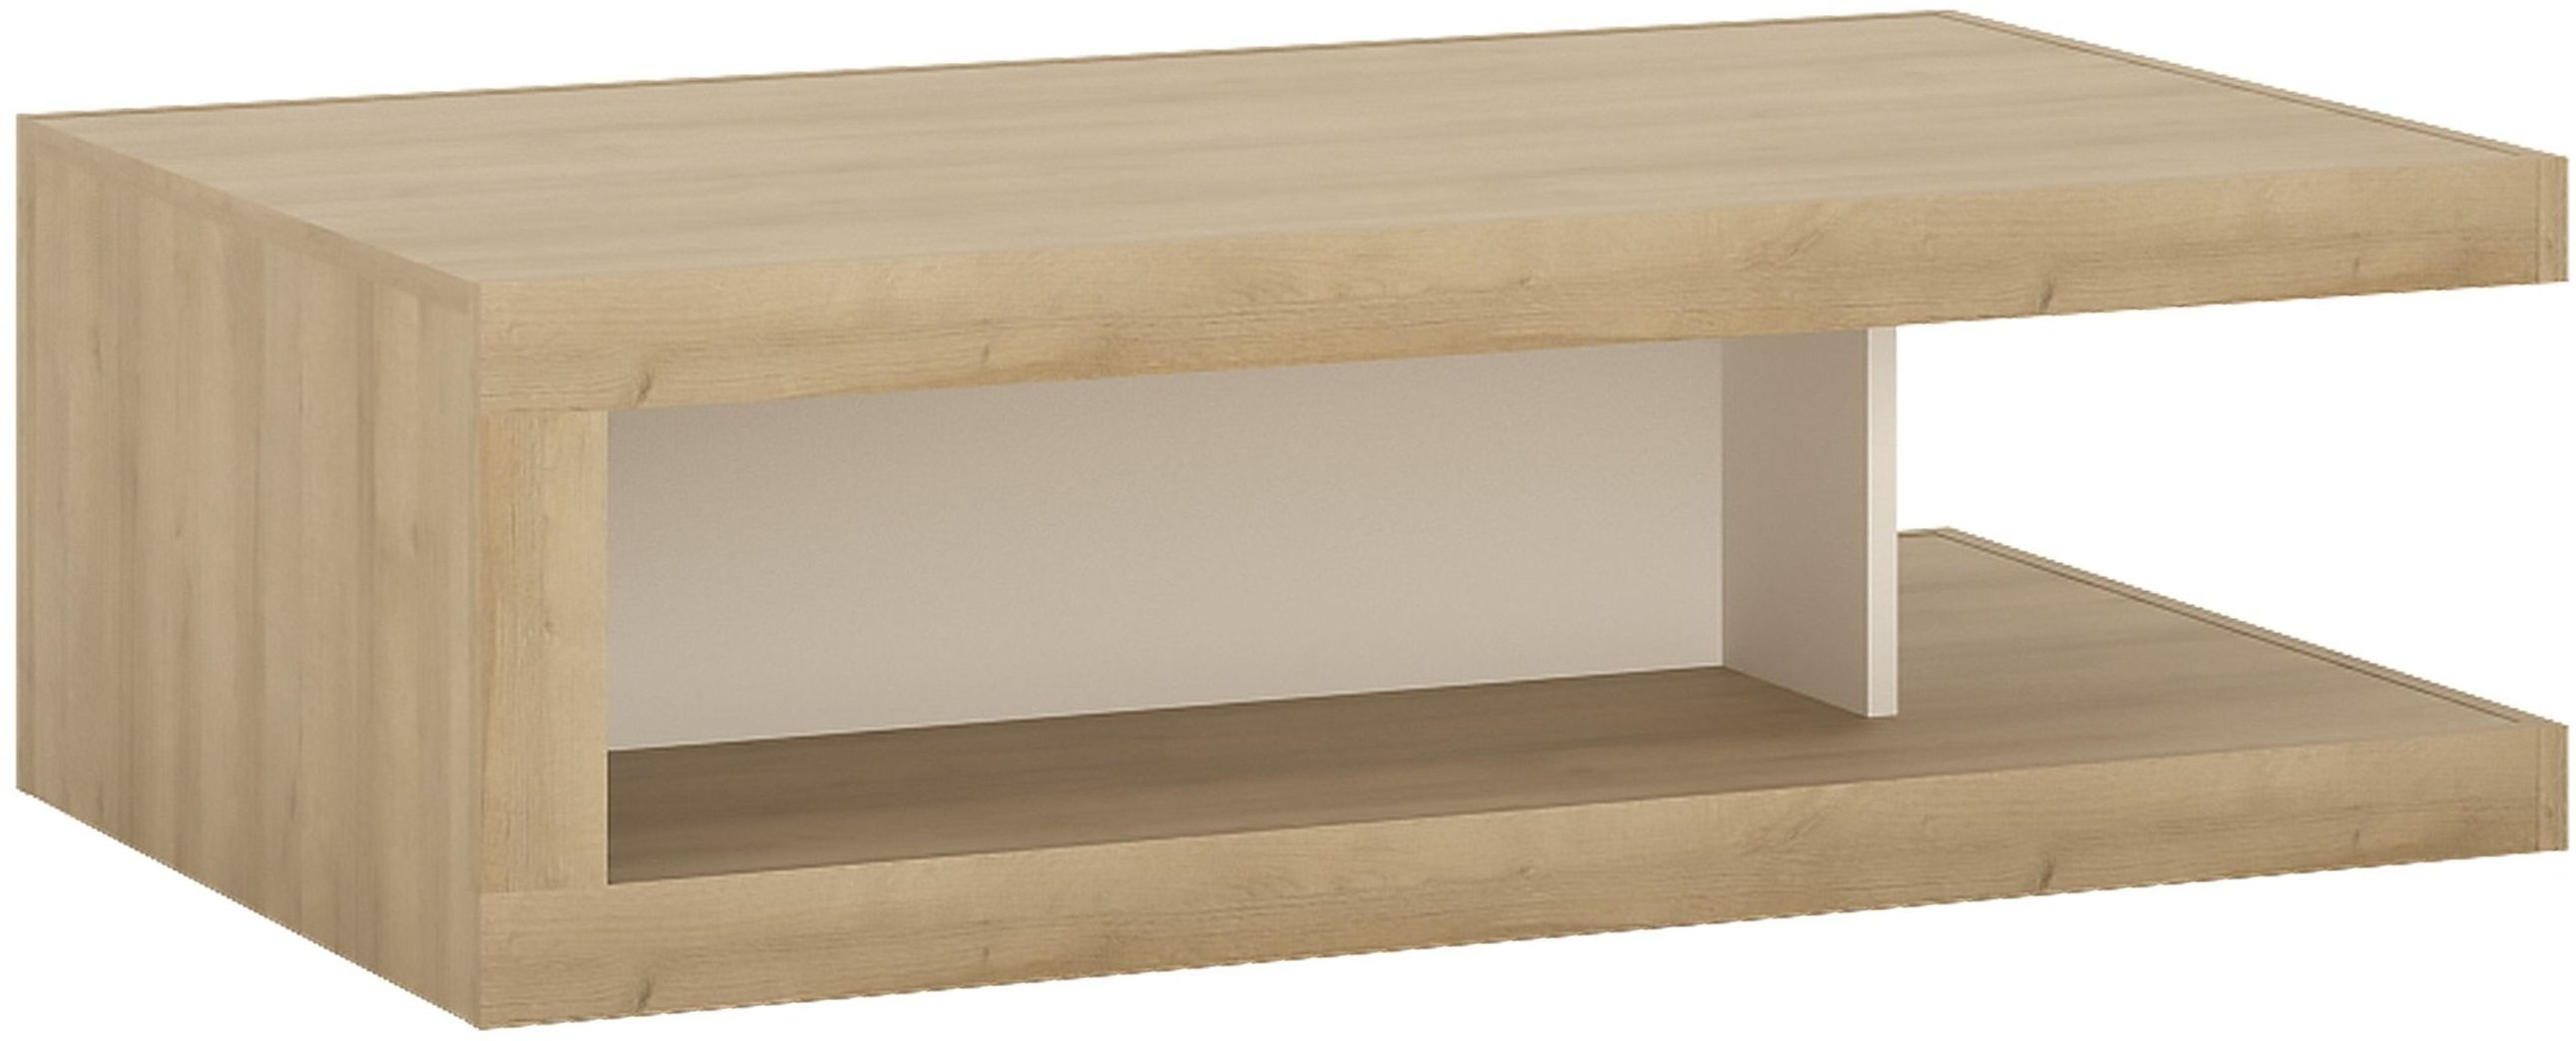 Buy Lyon Riviera Oak and White High Gloss Designer Coffee Table On